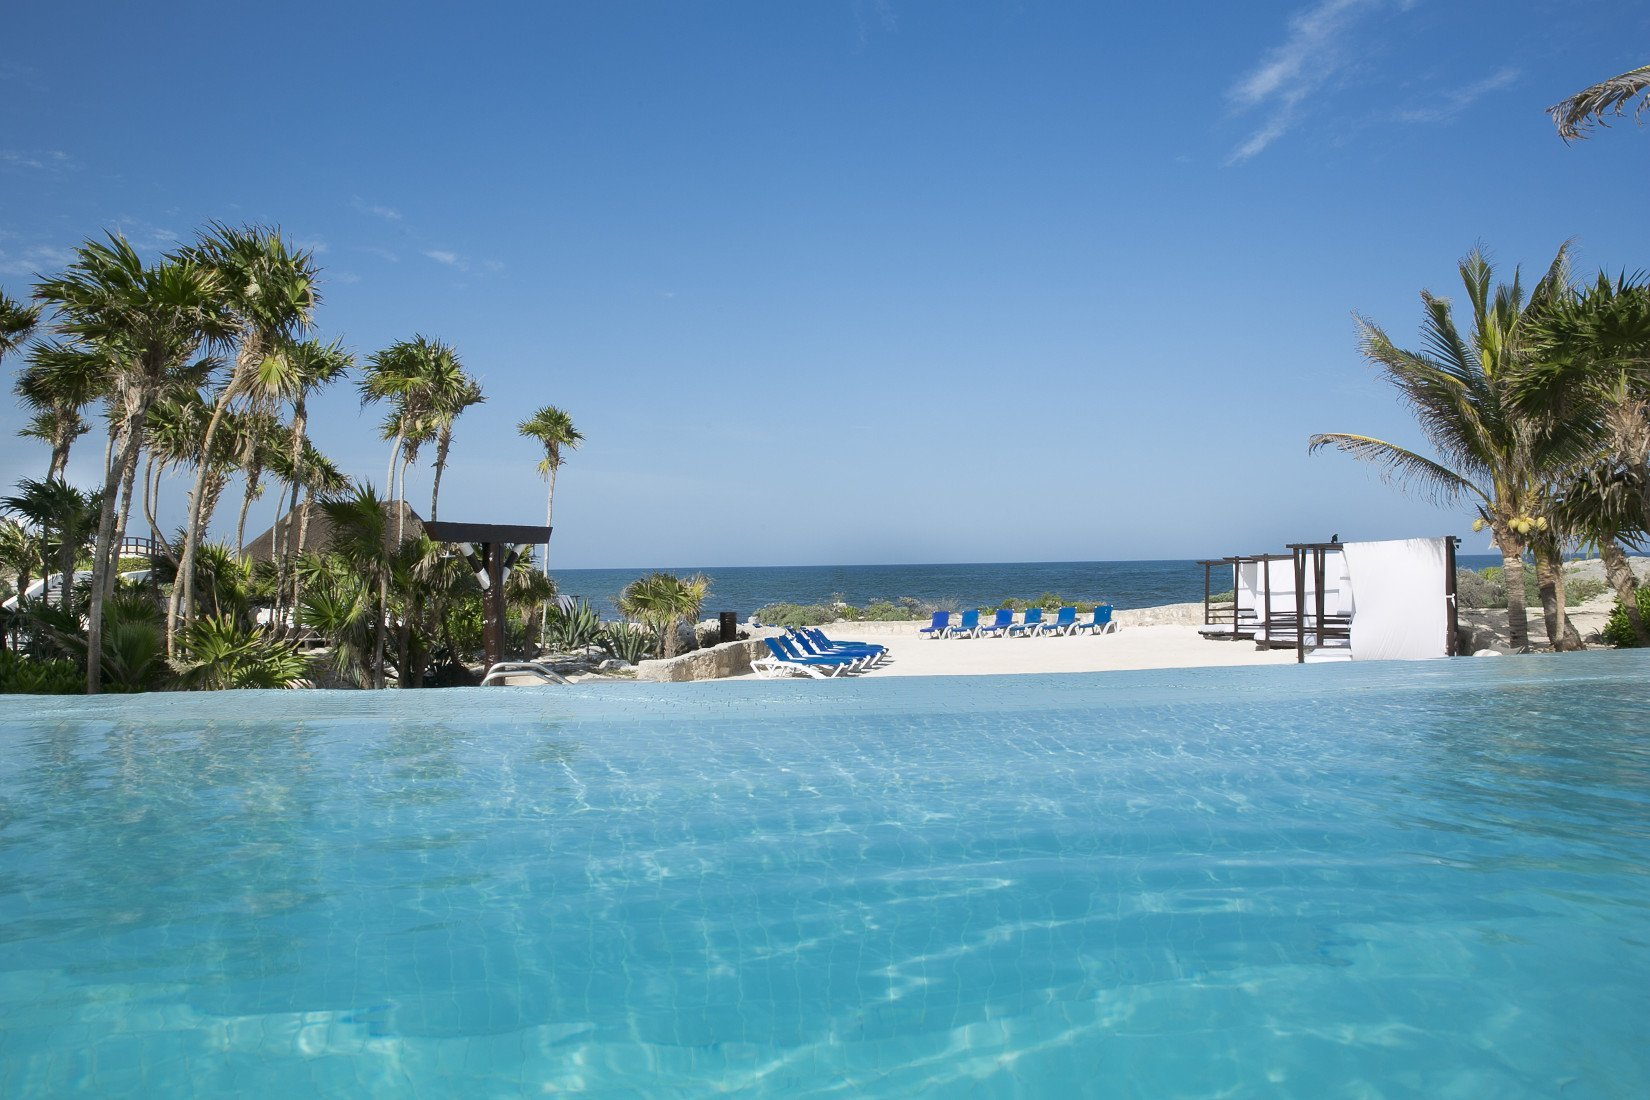 Retreat Spa Kore Tulum Retreat And Spa Resort Hotel In Tulum, Official